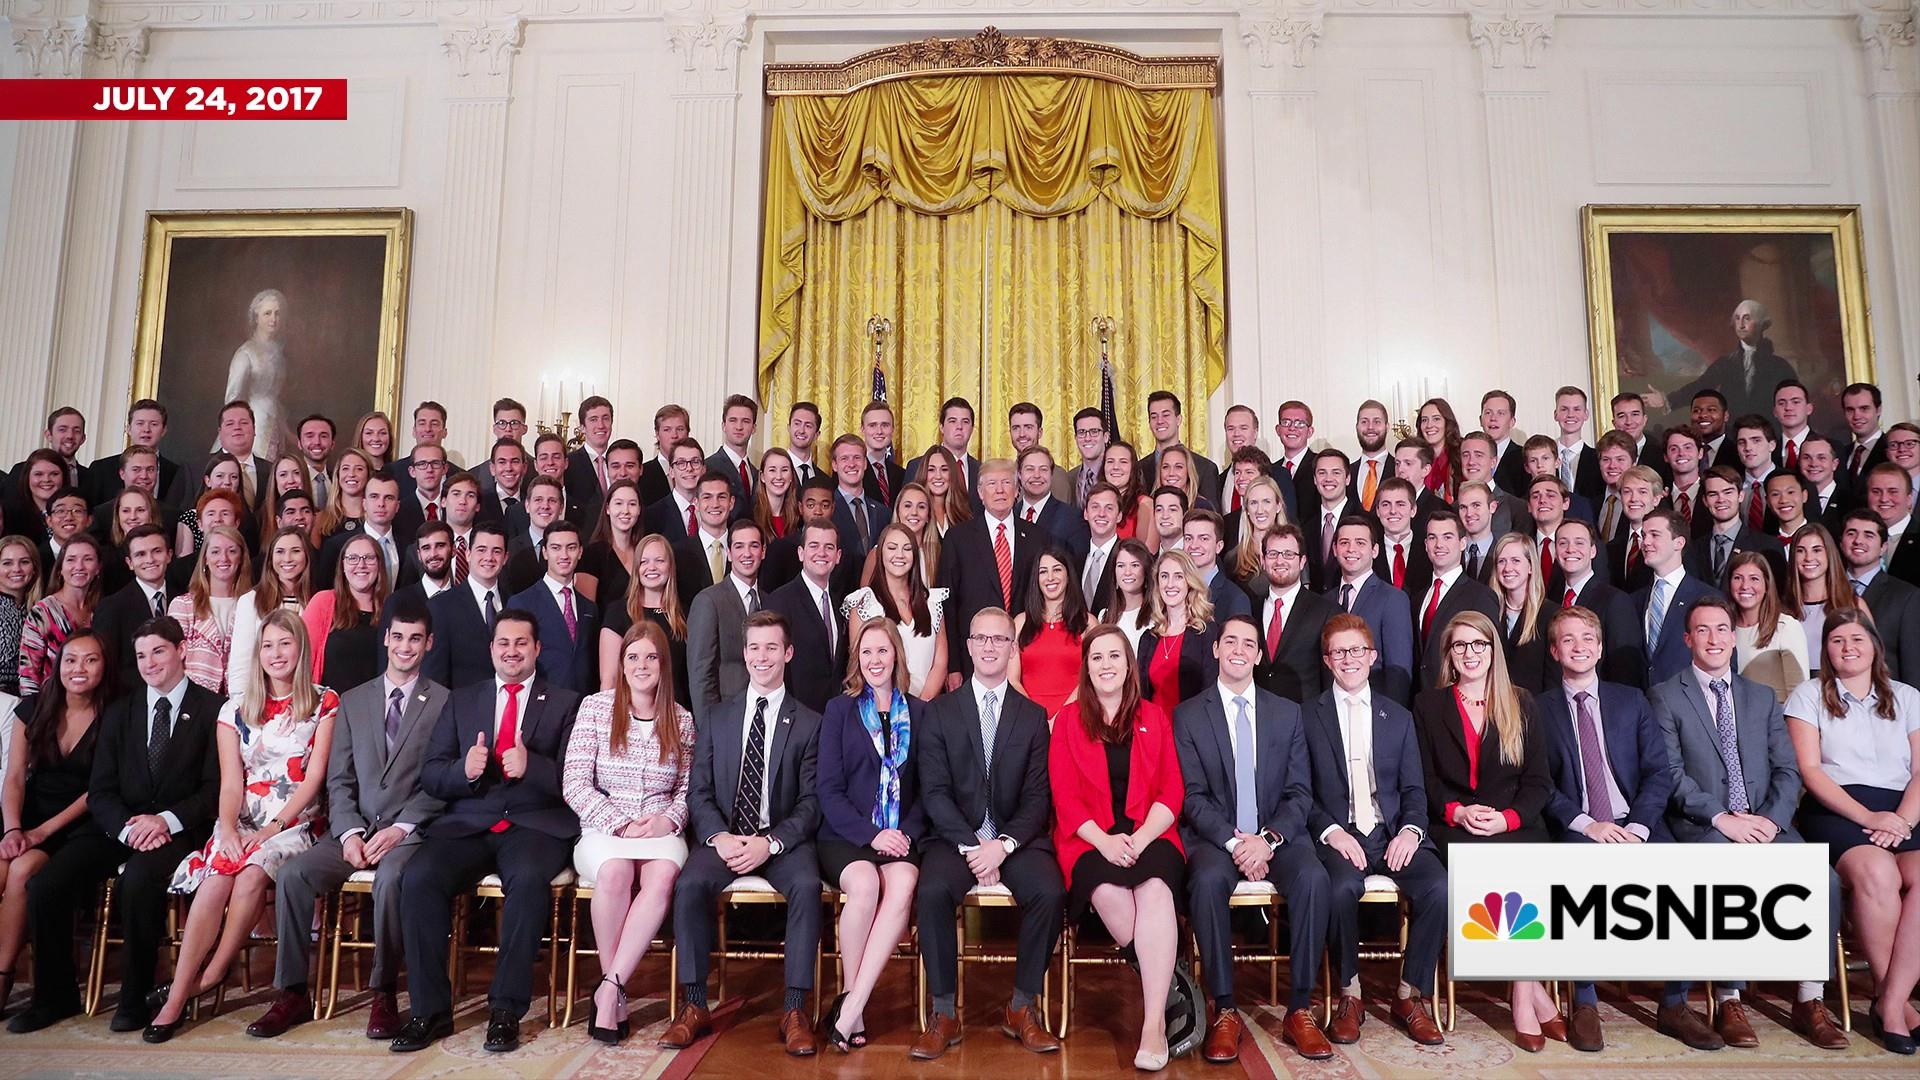 Diversity in the White House intern class: Why it's important